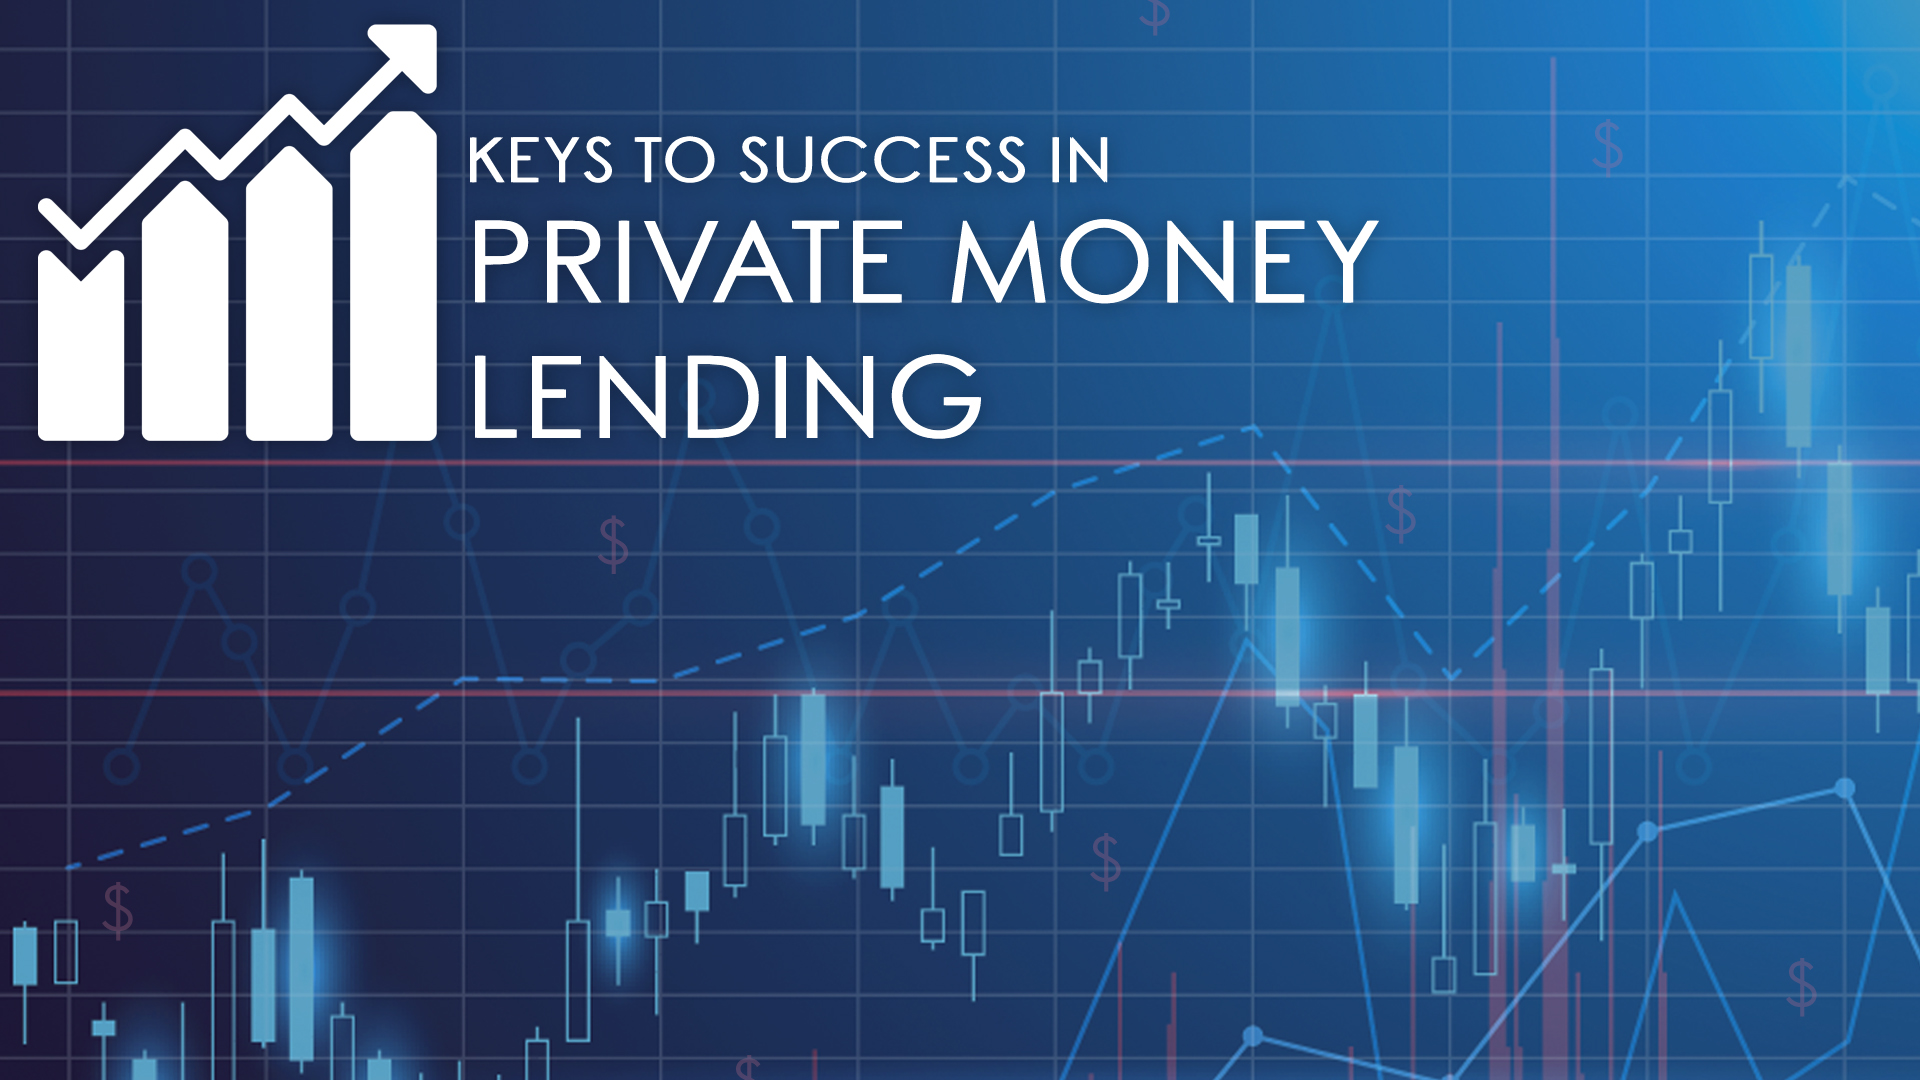 keys to success for private money lending | Insight's Decision Cloud